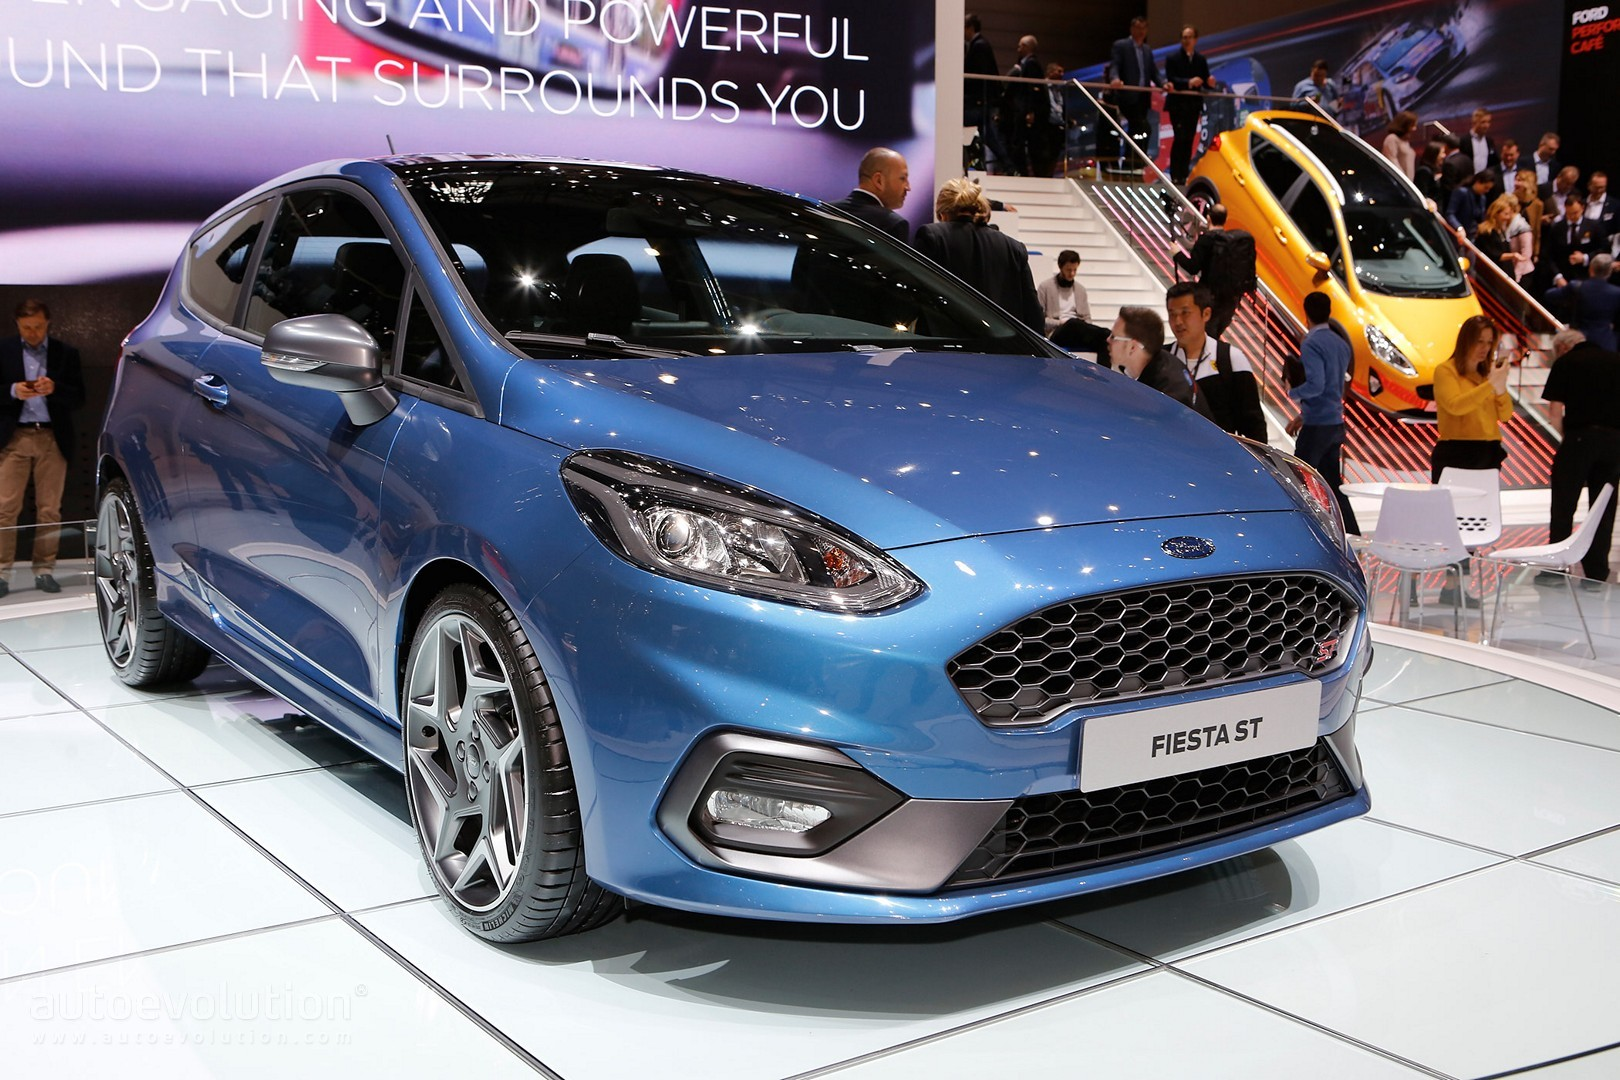 2017 ford fiesta will be made exclusively in germany for. Black Bedroom Furniture Sets. Home Design Ideas